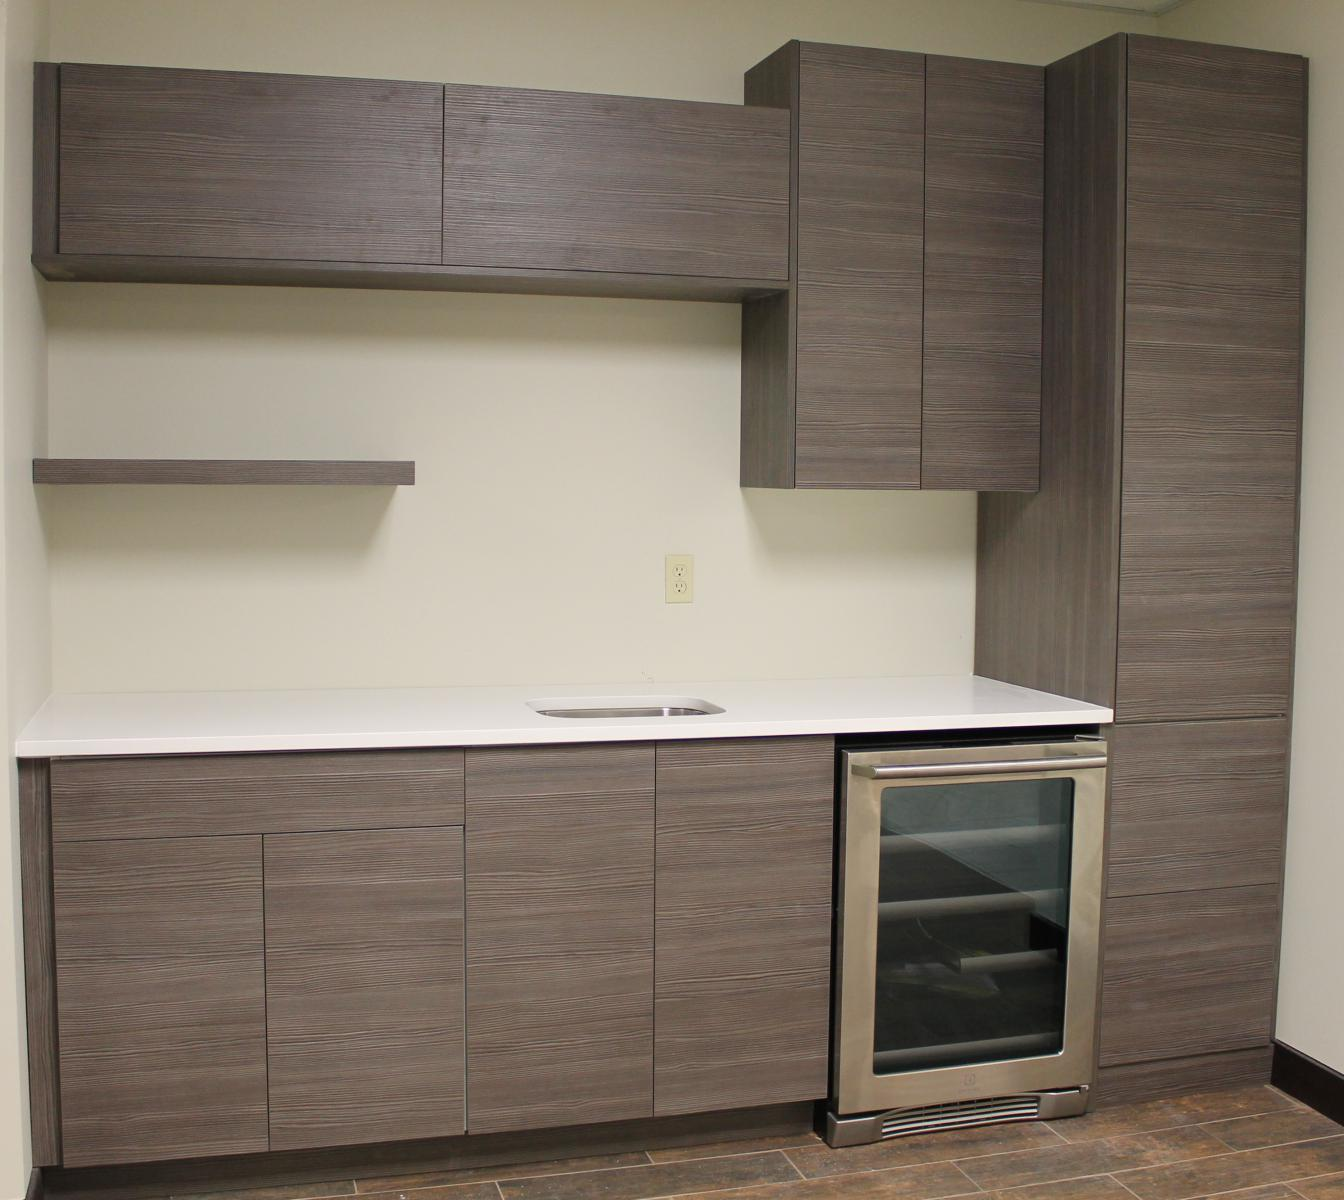 Lava euro cabinet gallery custom cabinets in denver for Eurostyle kitchen cabinets